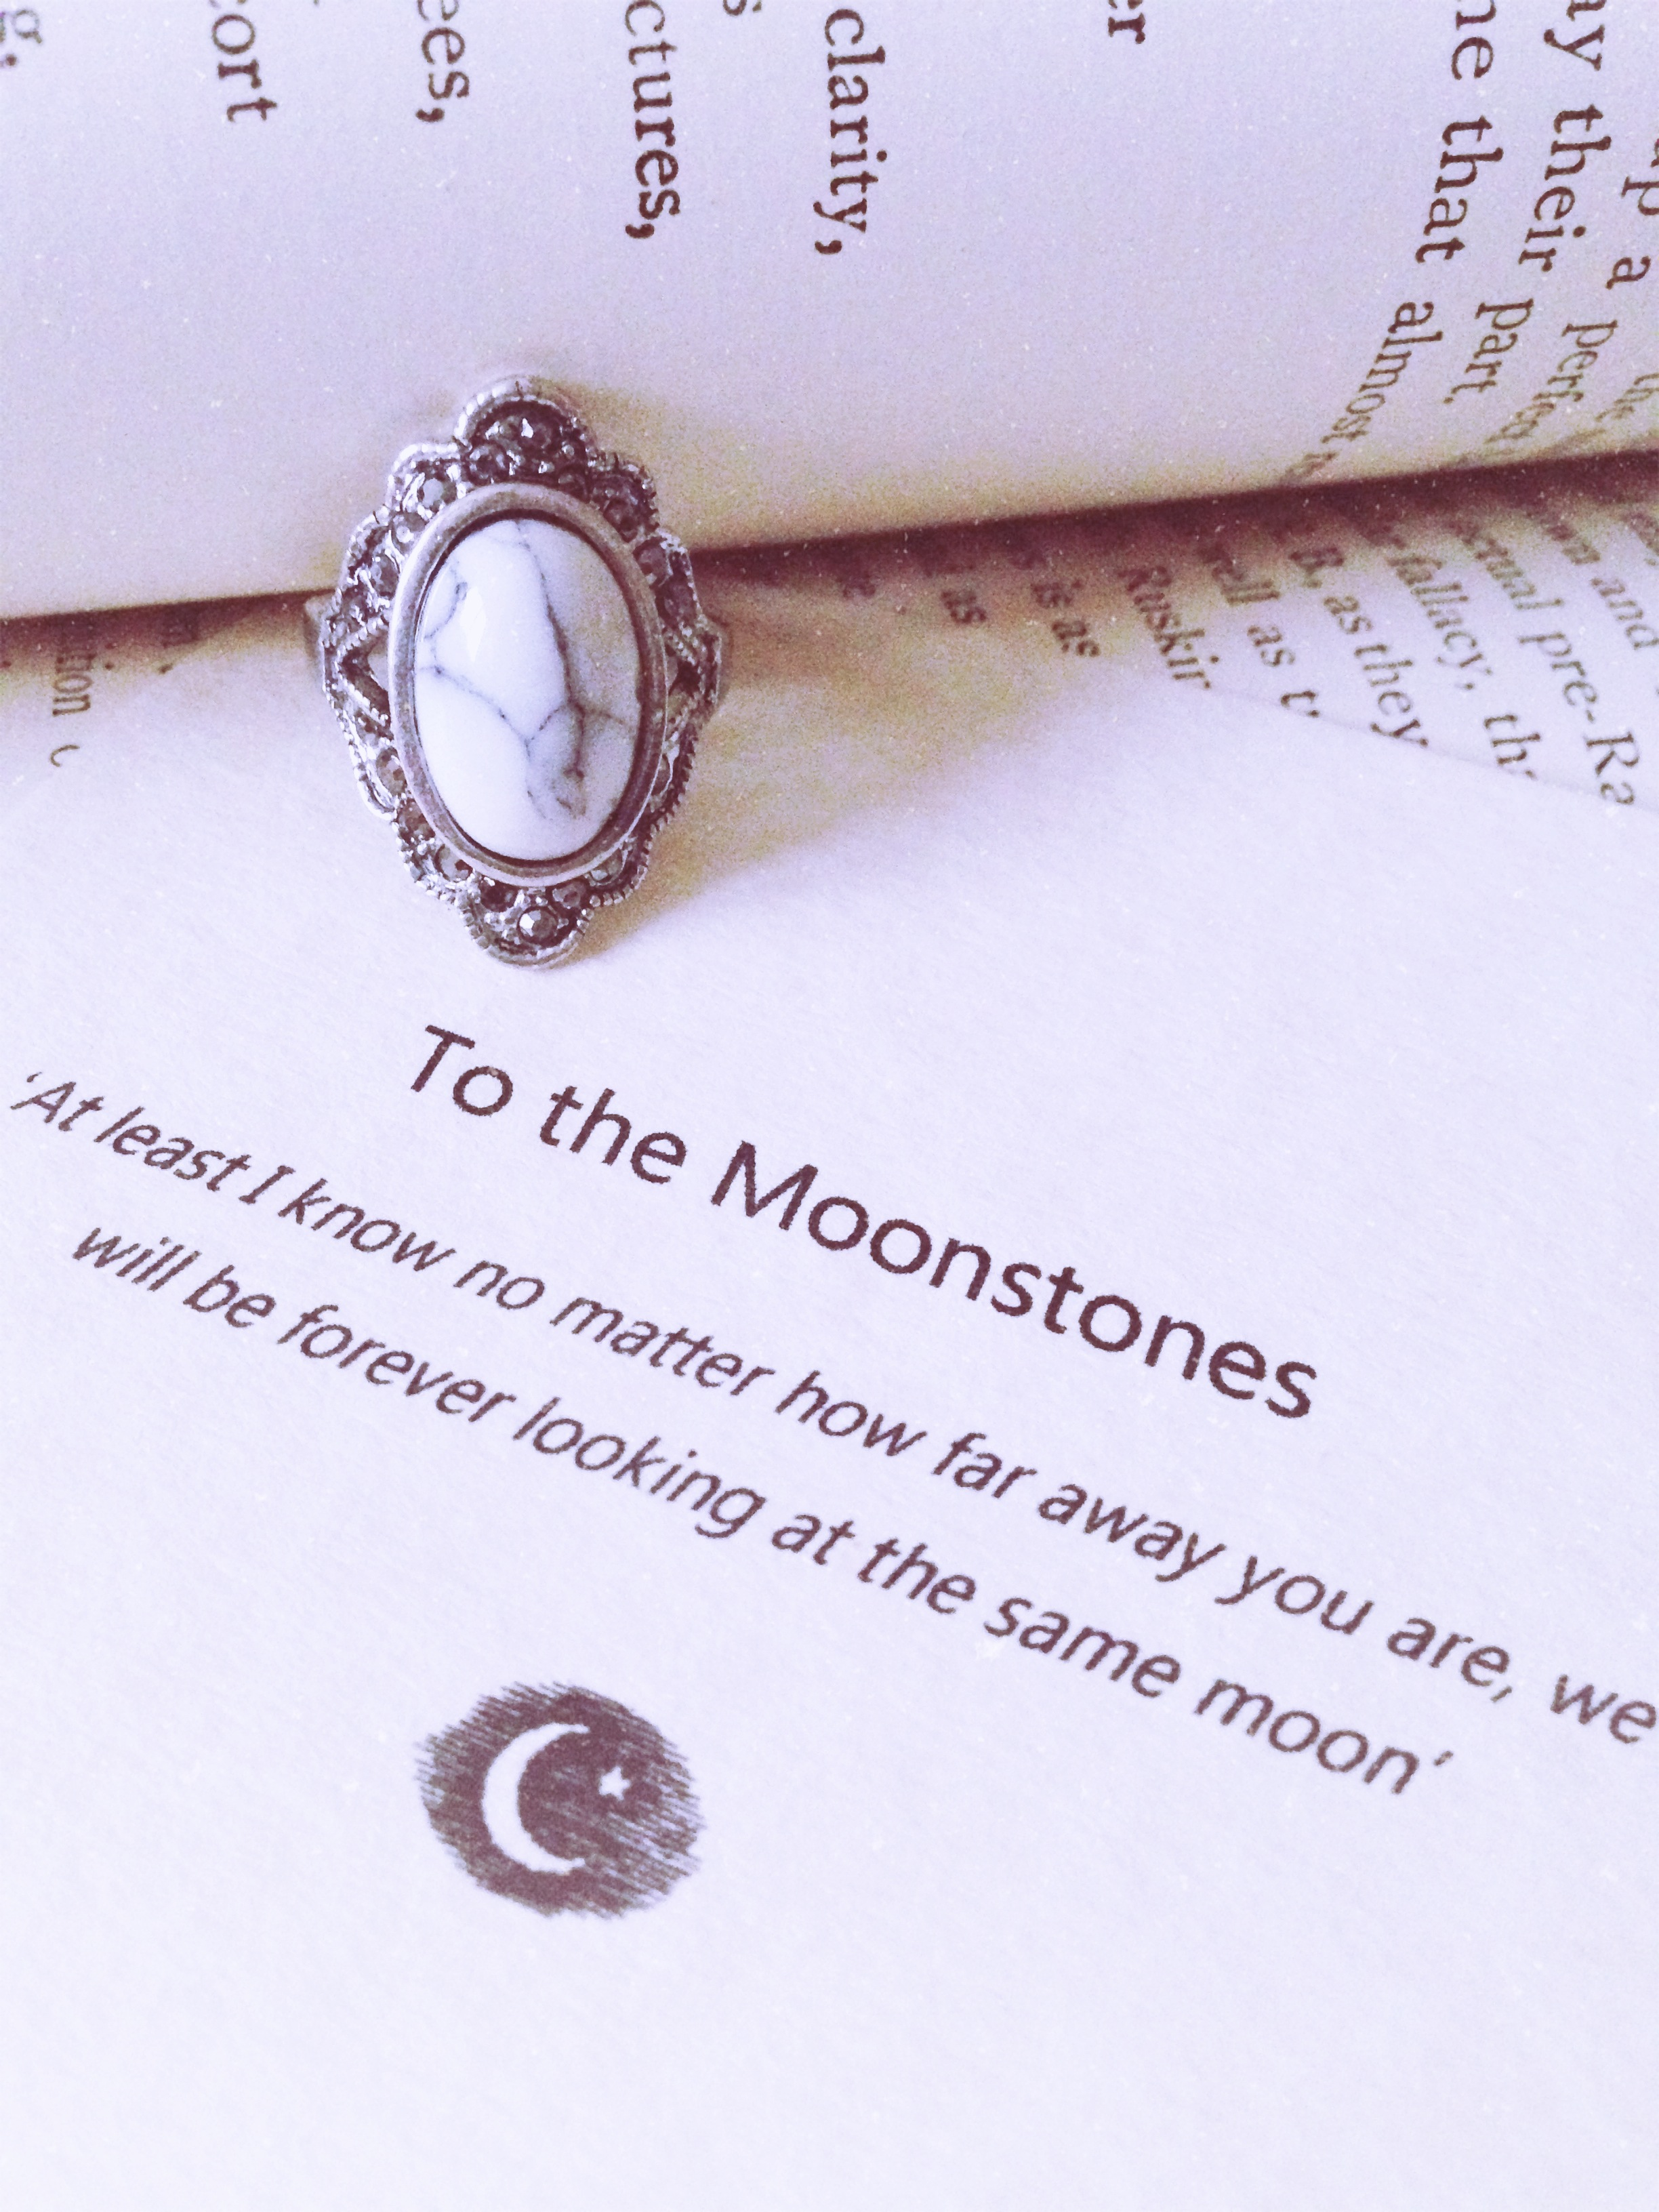 To the moonstones ring (howlite)